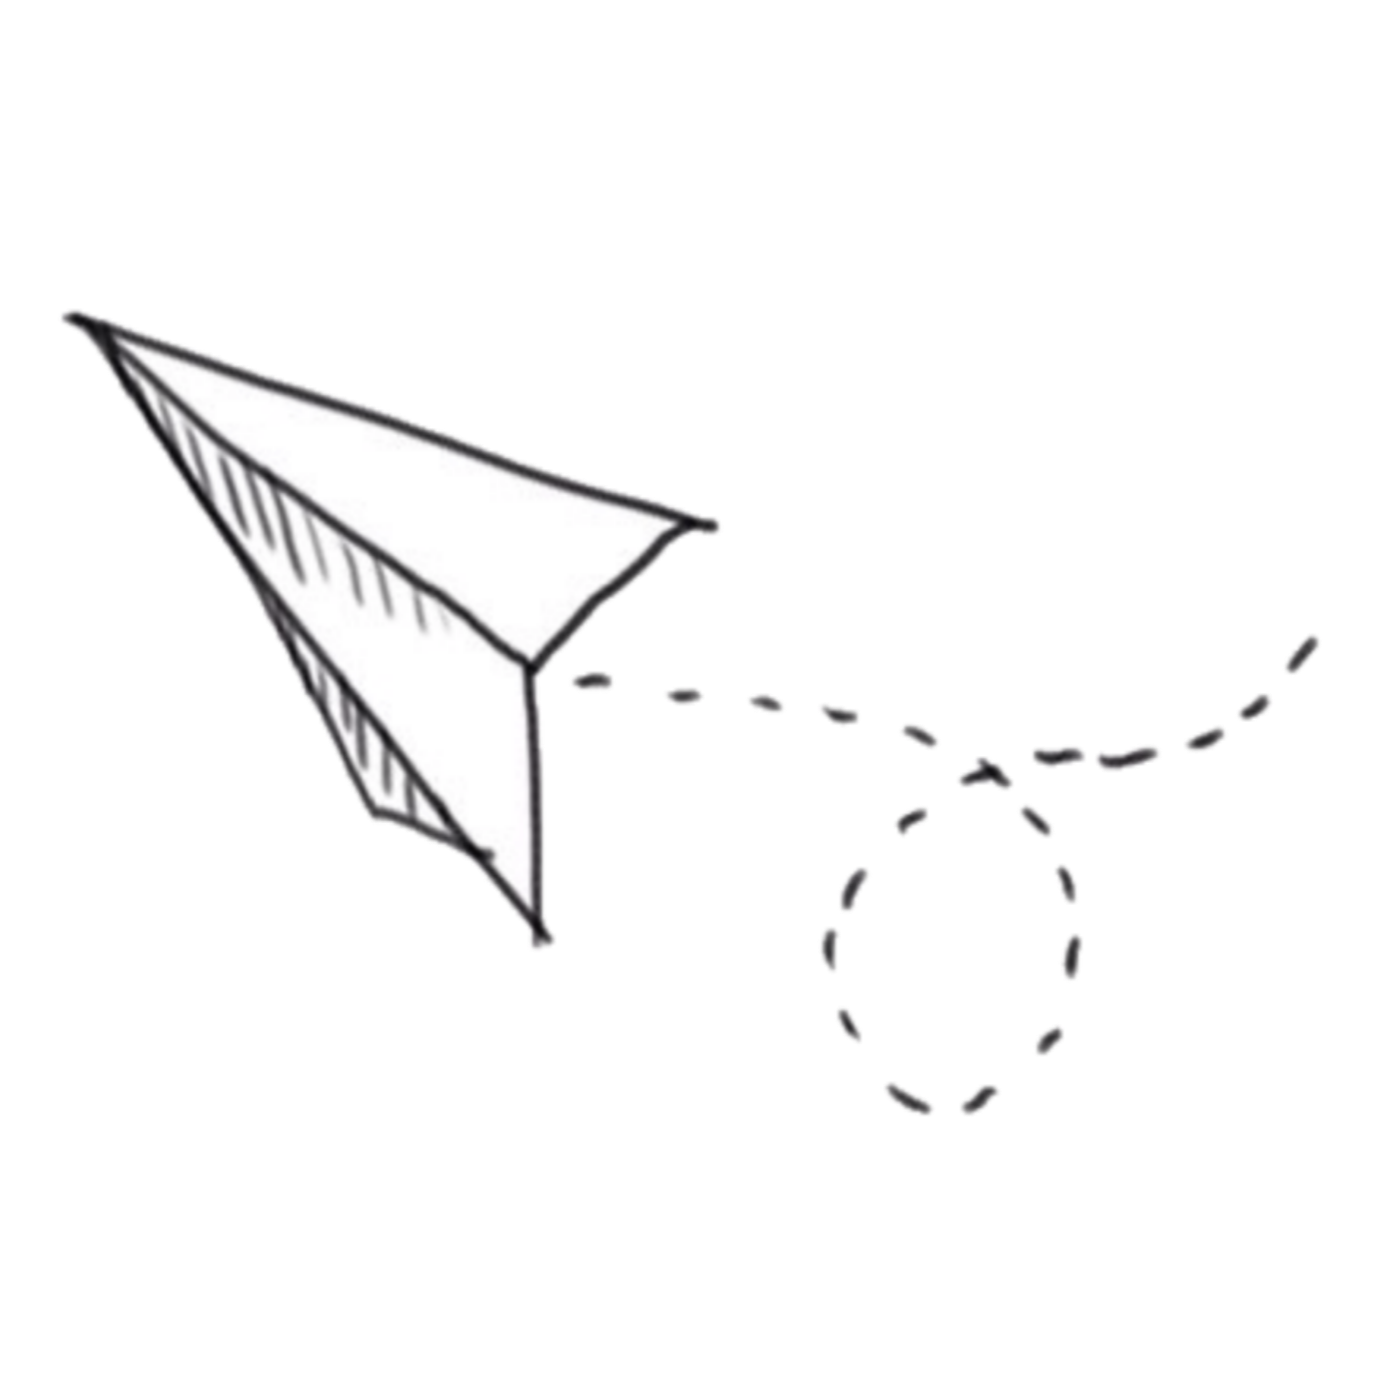 Plane Ucak Sky Paper Paperplane Pink Aesthetic Icon Overlay Background Tumblr Doddle Black White Sim Overlays Tumblr Instagram Icons Paper Plane